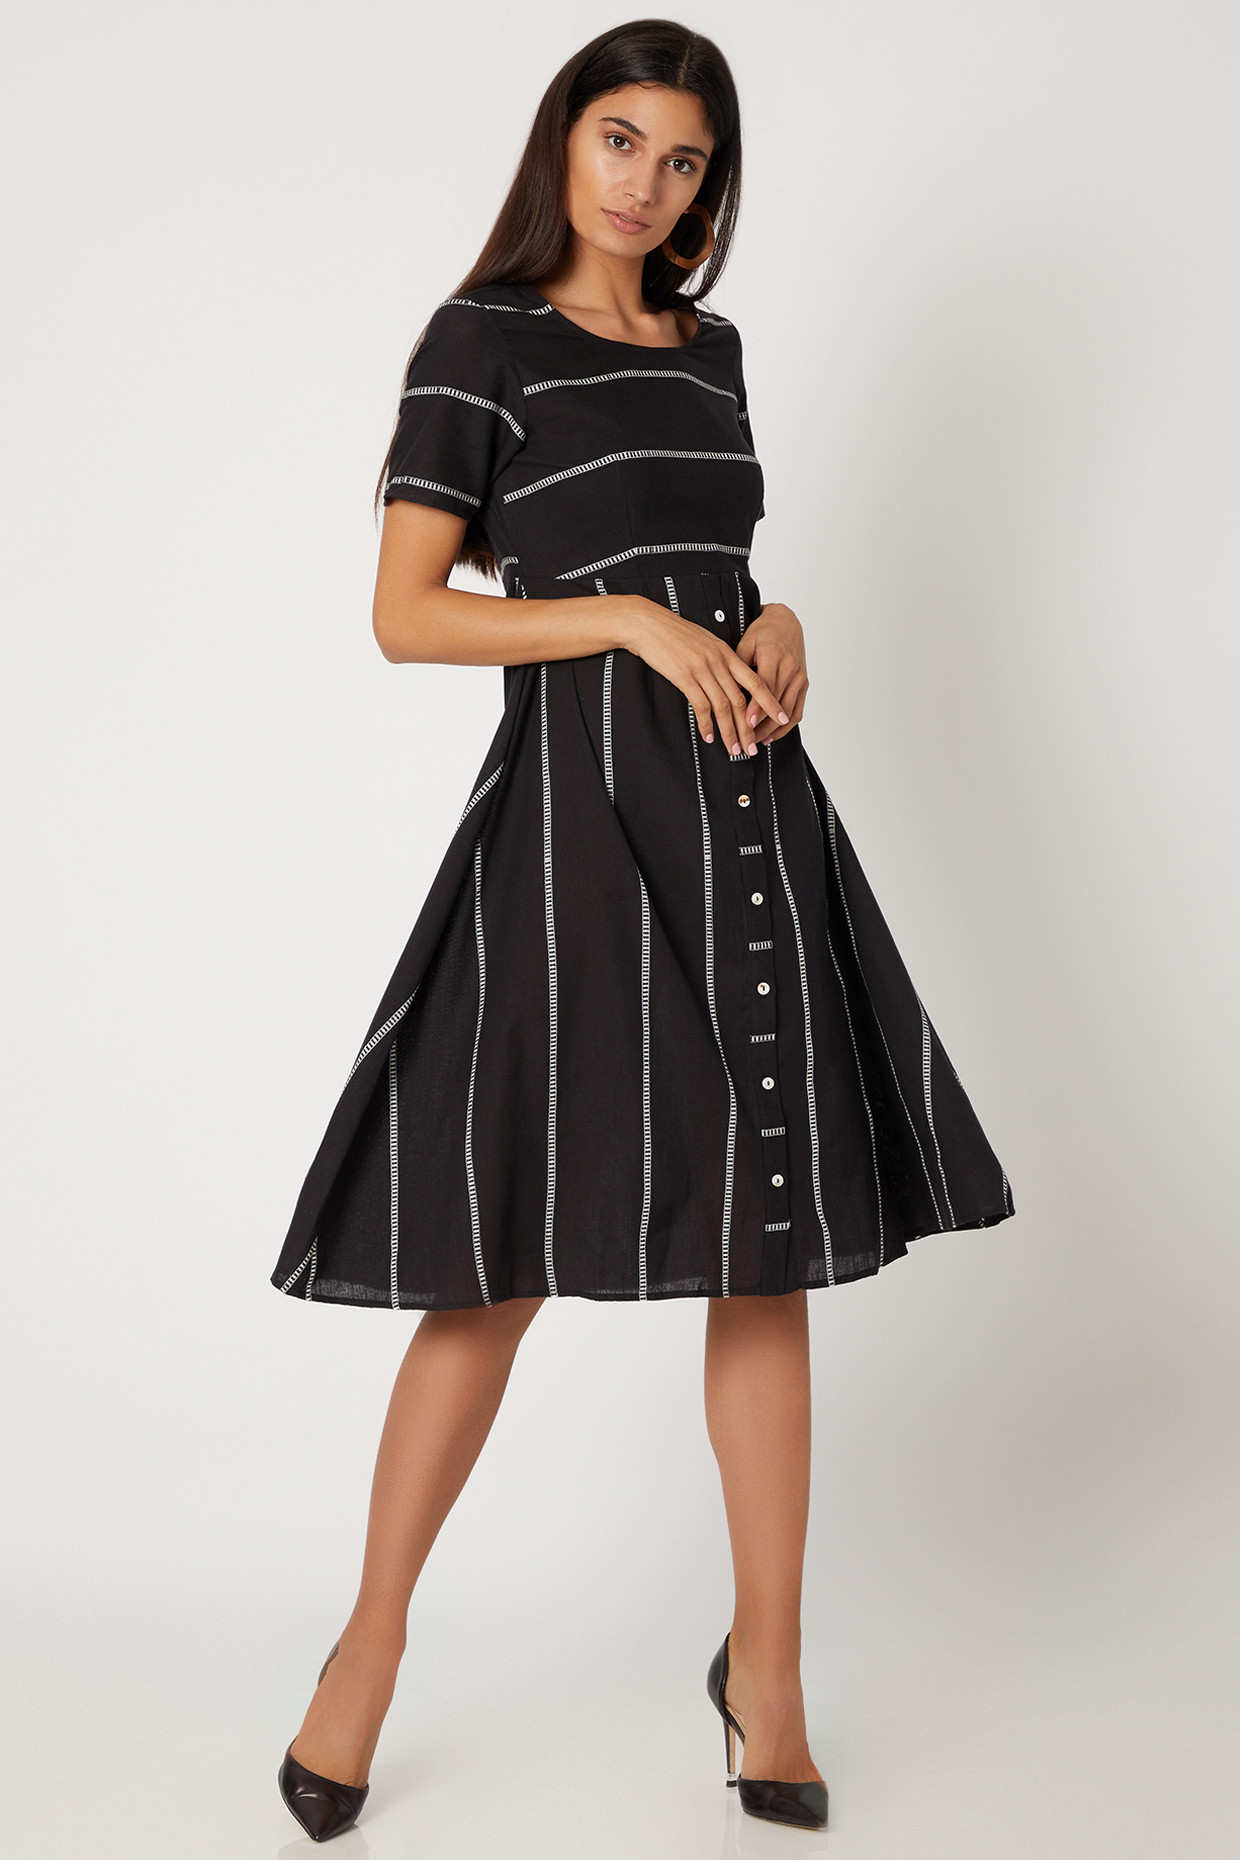 Black Striped Hand Woven Dress With Front Buttons by Avadh